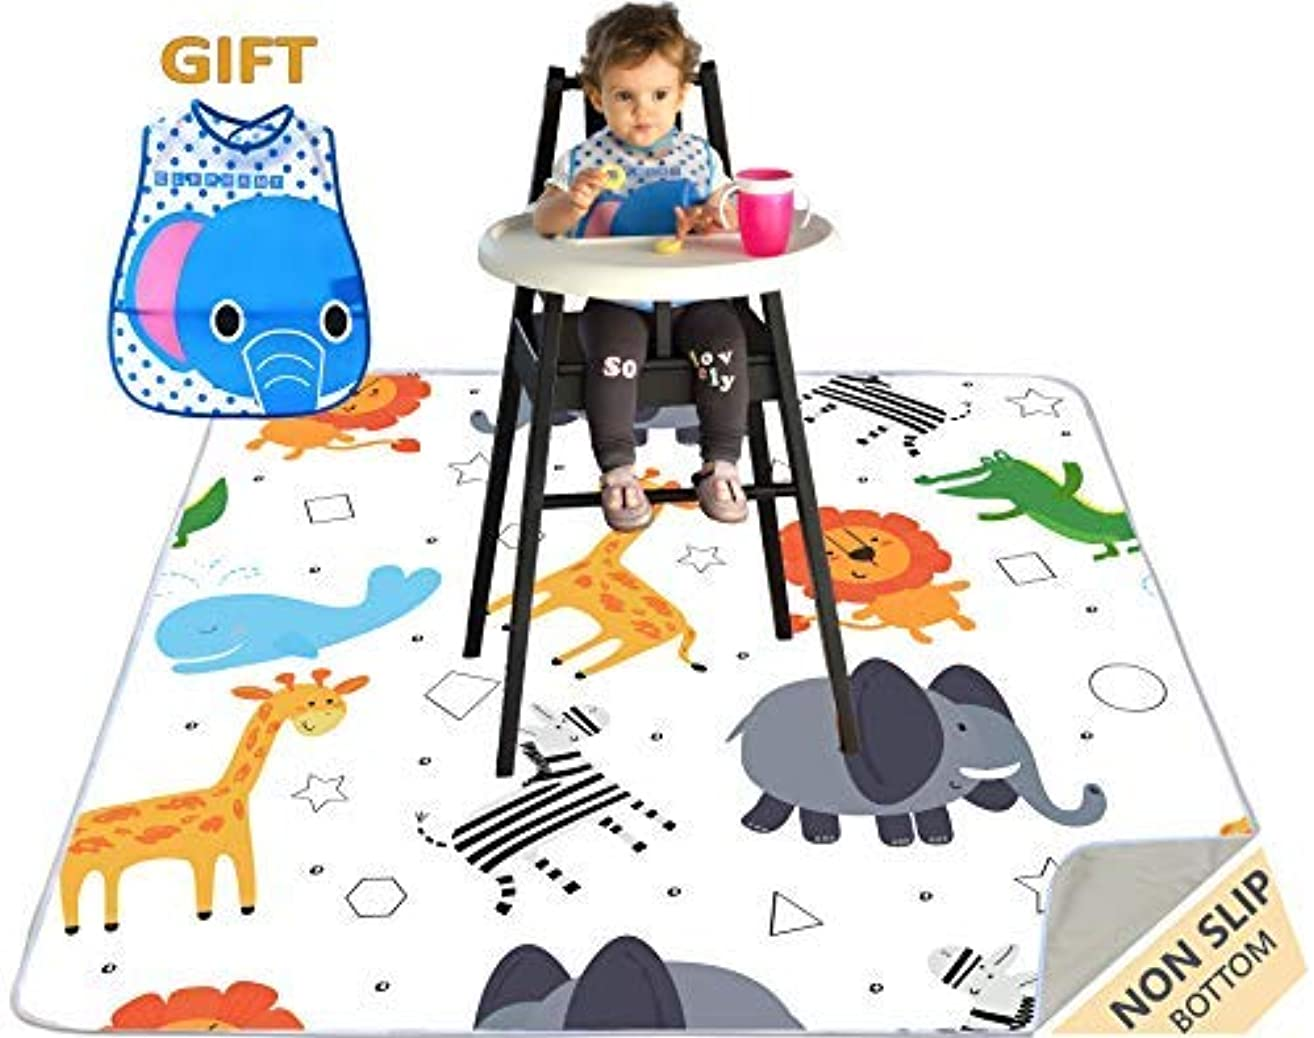 "51"" Waterproof Splat Mat for Under High Chair, Ariond Kids Washable, Anti-Slip Floor Splash Mat, Portable Feeding Mat, Play Mat and Table Cloth for Art/Crafts + Free bib"